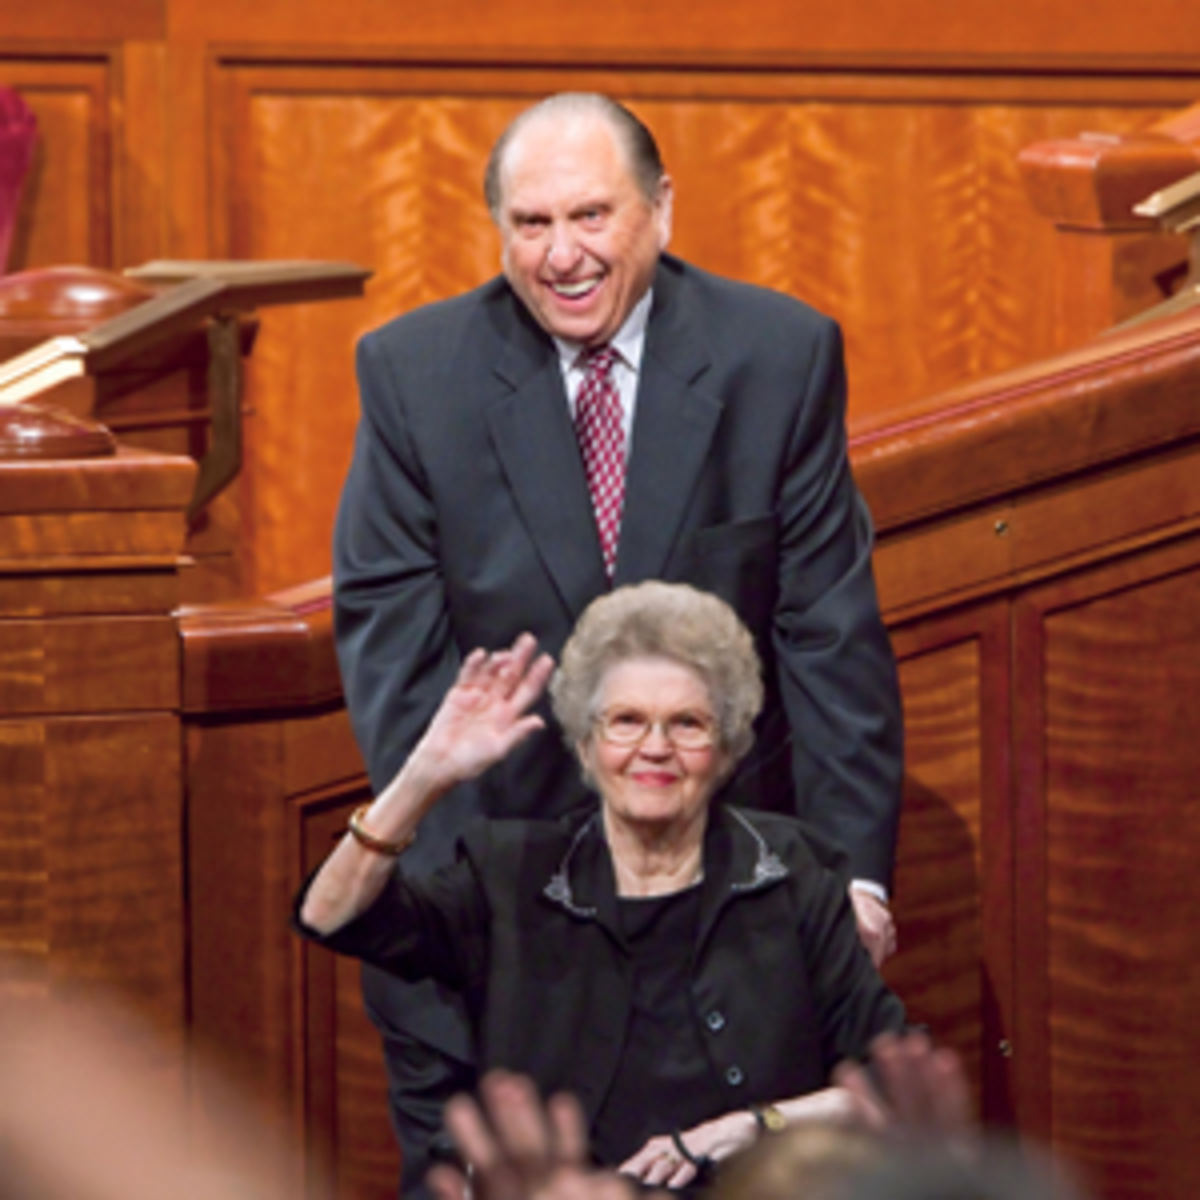 President Monson and his wife